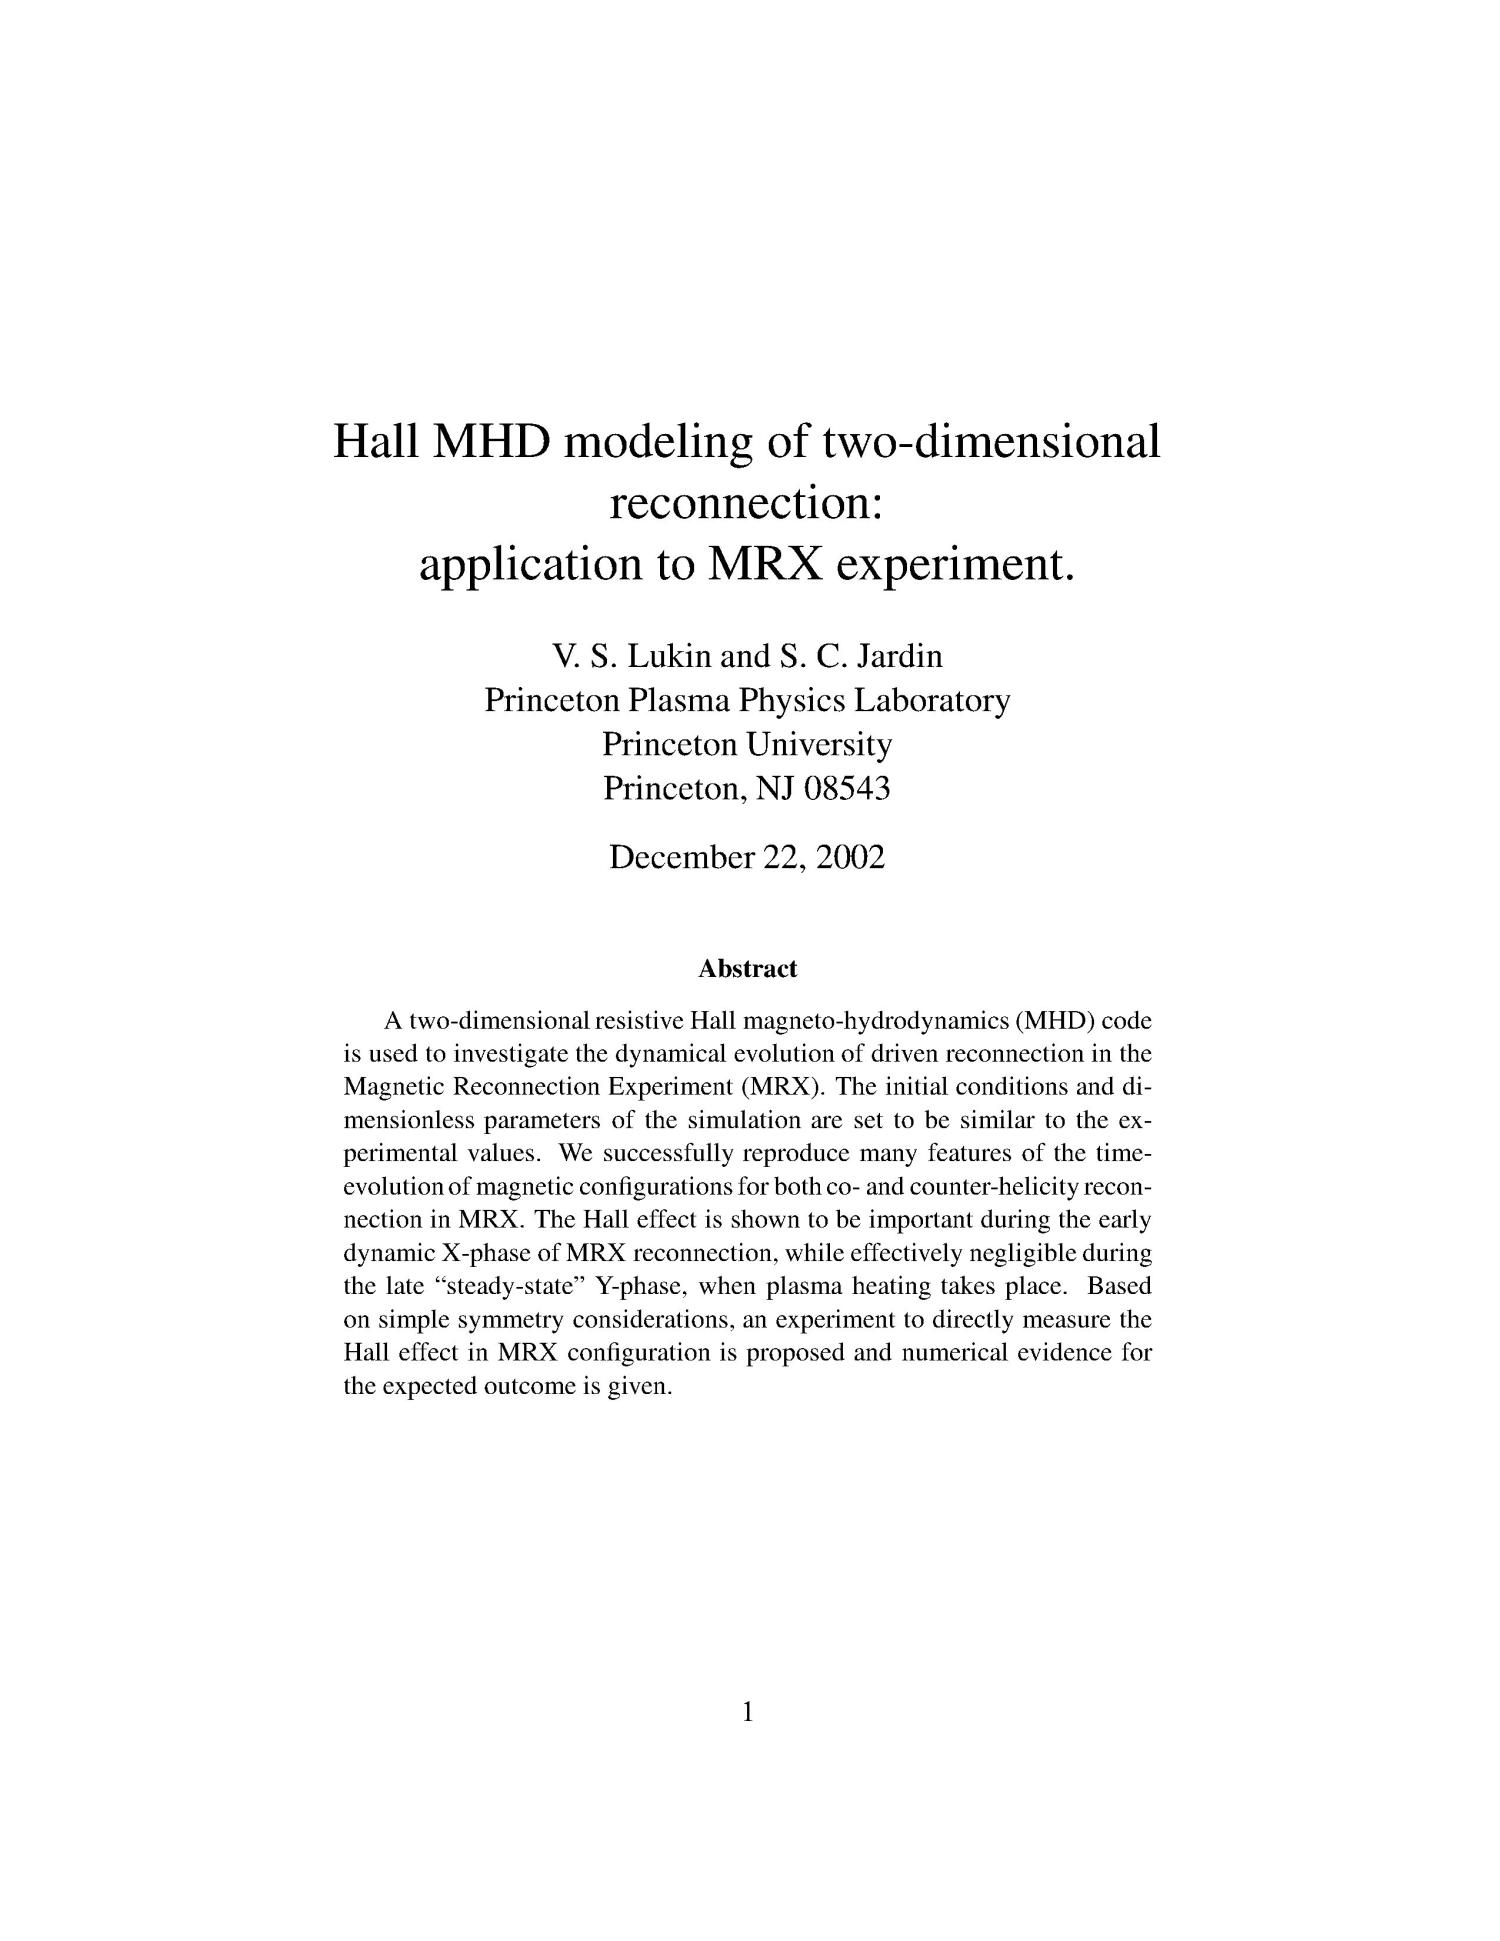 Hall MHD Modeling of Two-dimensional Reconnection: Application to MRX Experiment                                                                                                      [Sequence #]: 3 of 22